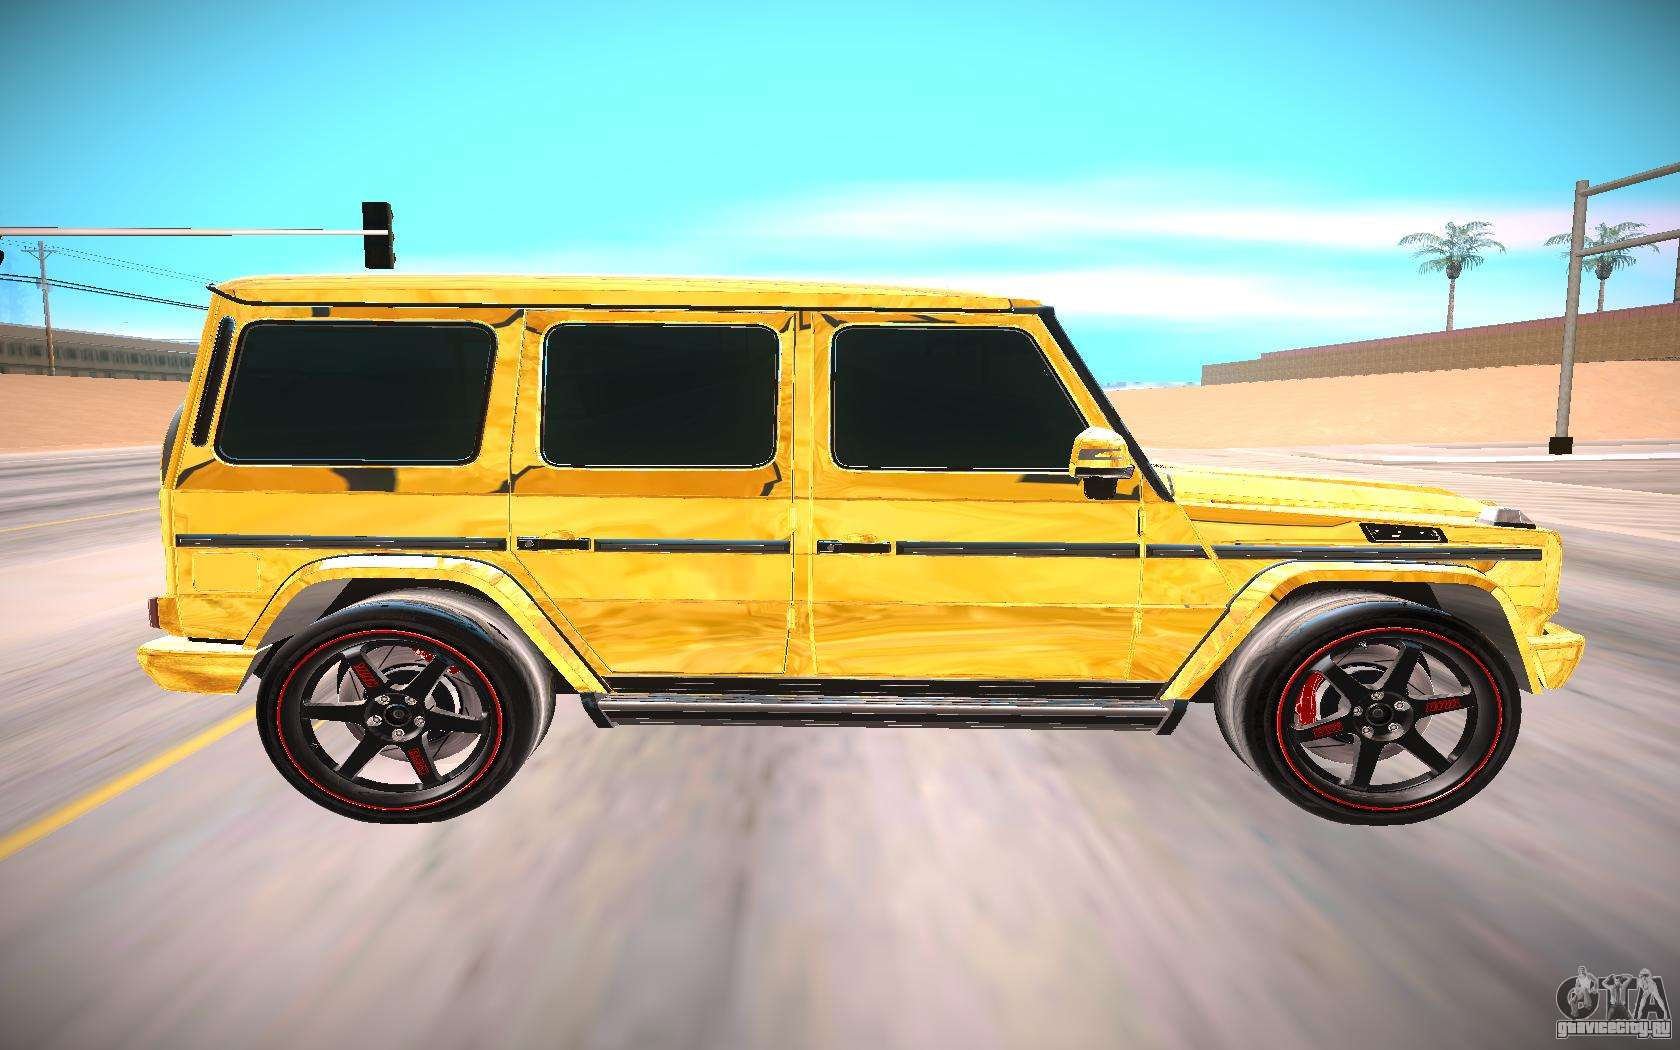 gta san andreas mercedes benz g65 amg with 97335 Mercedes Benz G65 Amg on 32906 Mercedes Benz G65 Amg Hamann besides 47496 Mercedes Benz G65 Amg in addition 22169 Mercedes Benz G500 Limousine in addition 59640 Mercedes Benz G65 Amg Carbon Edition also 24154 Mercedes Benz G65 Amg 2013.